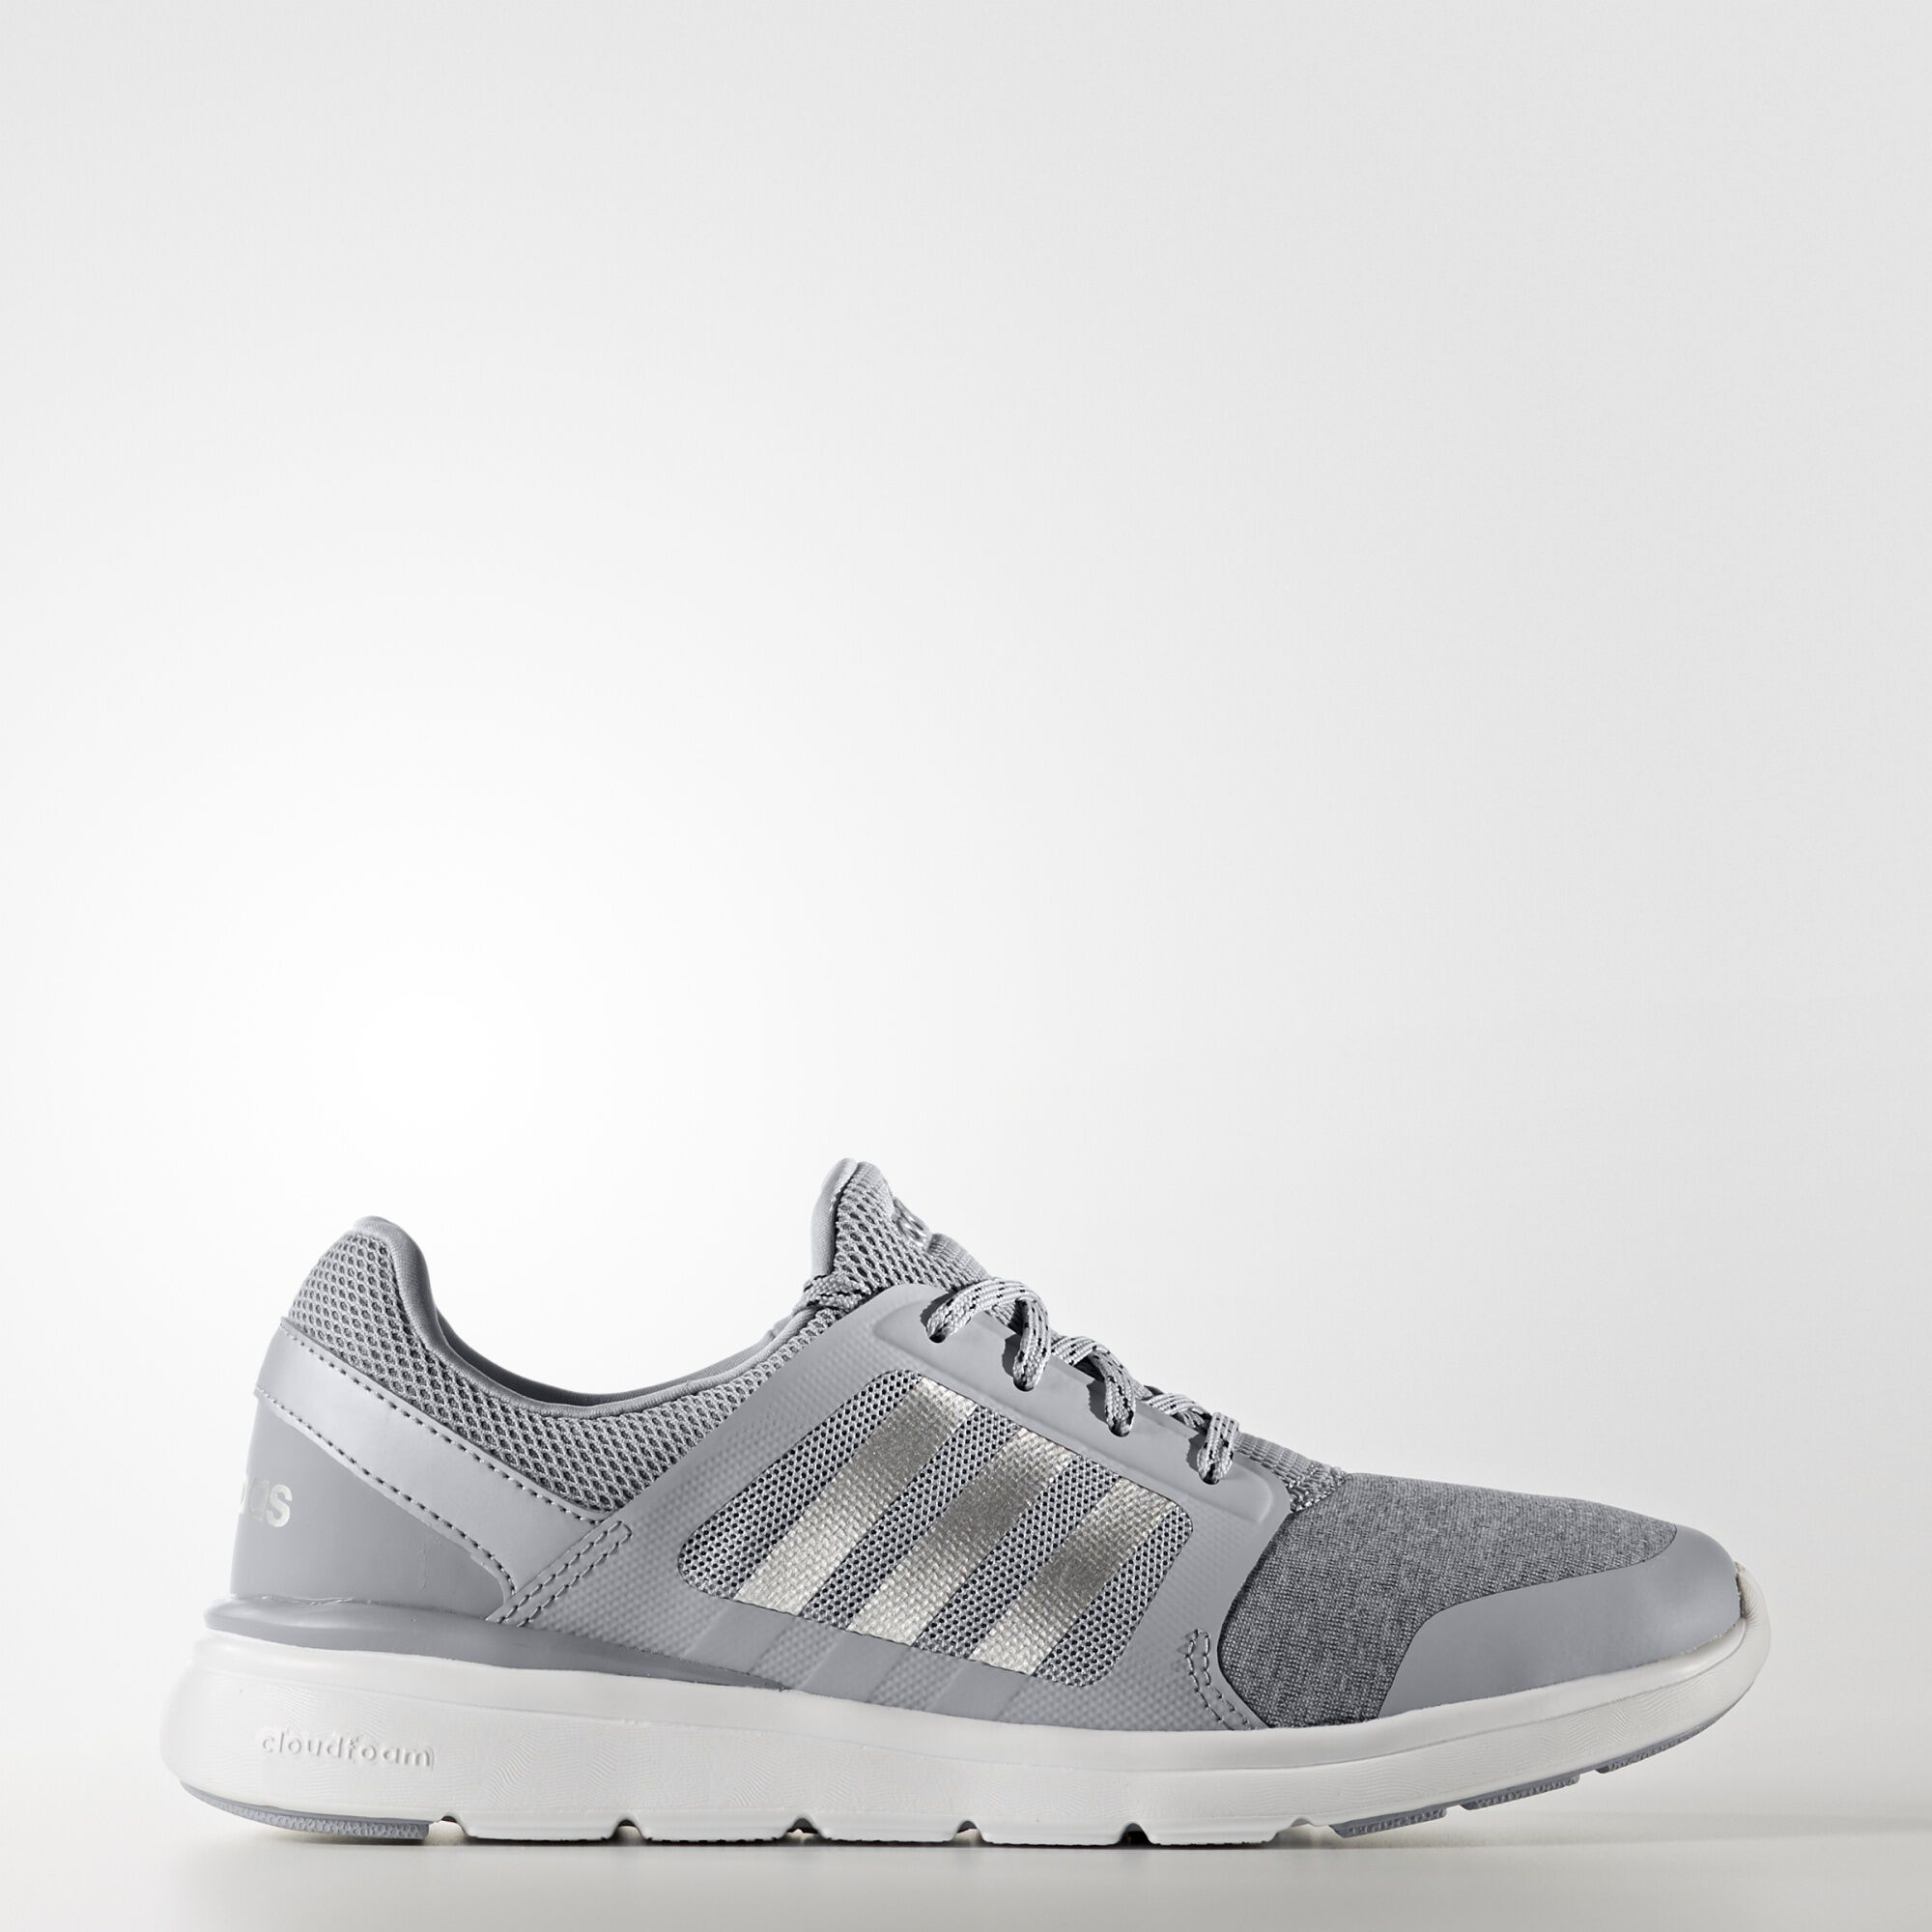 Adidas Neo Shoes For Ladies